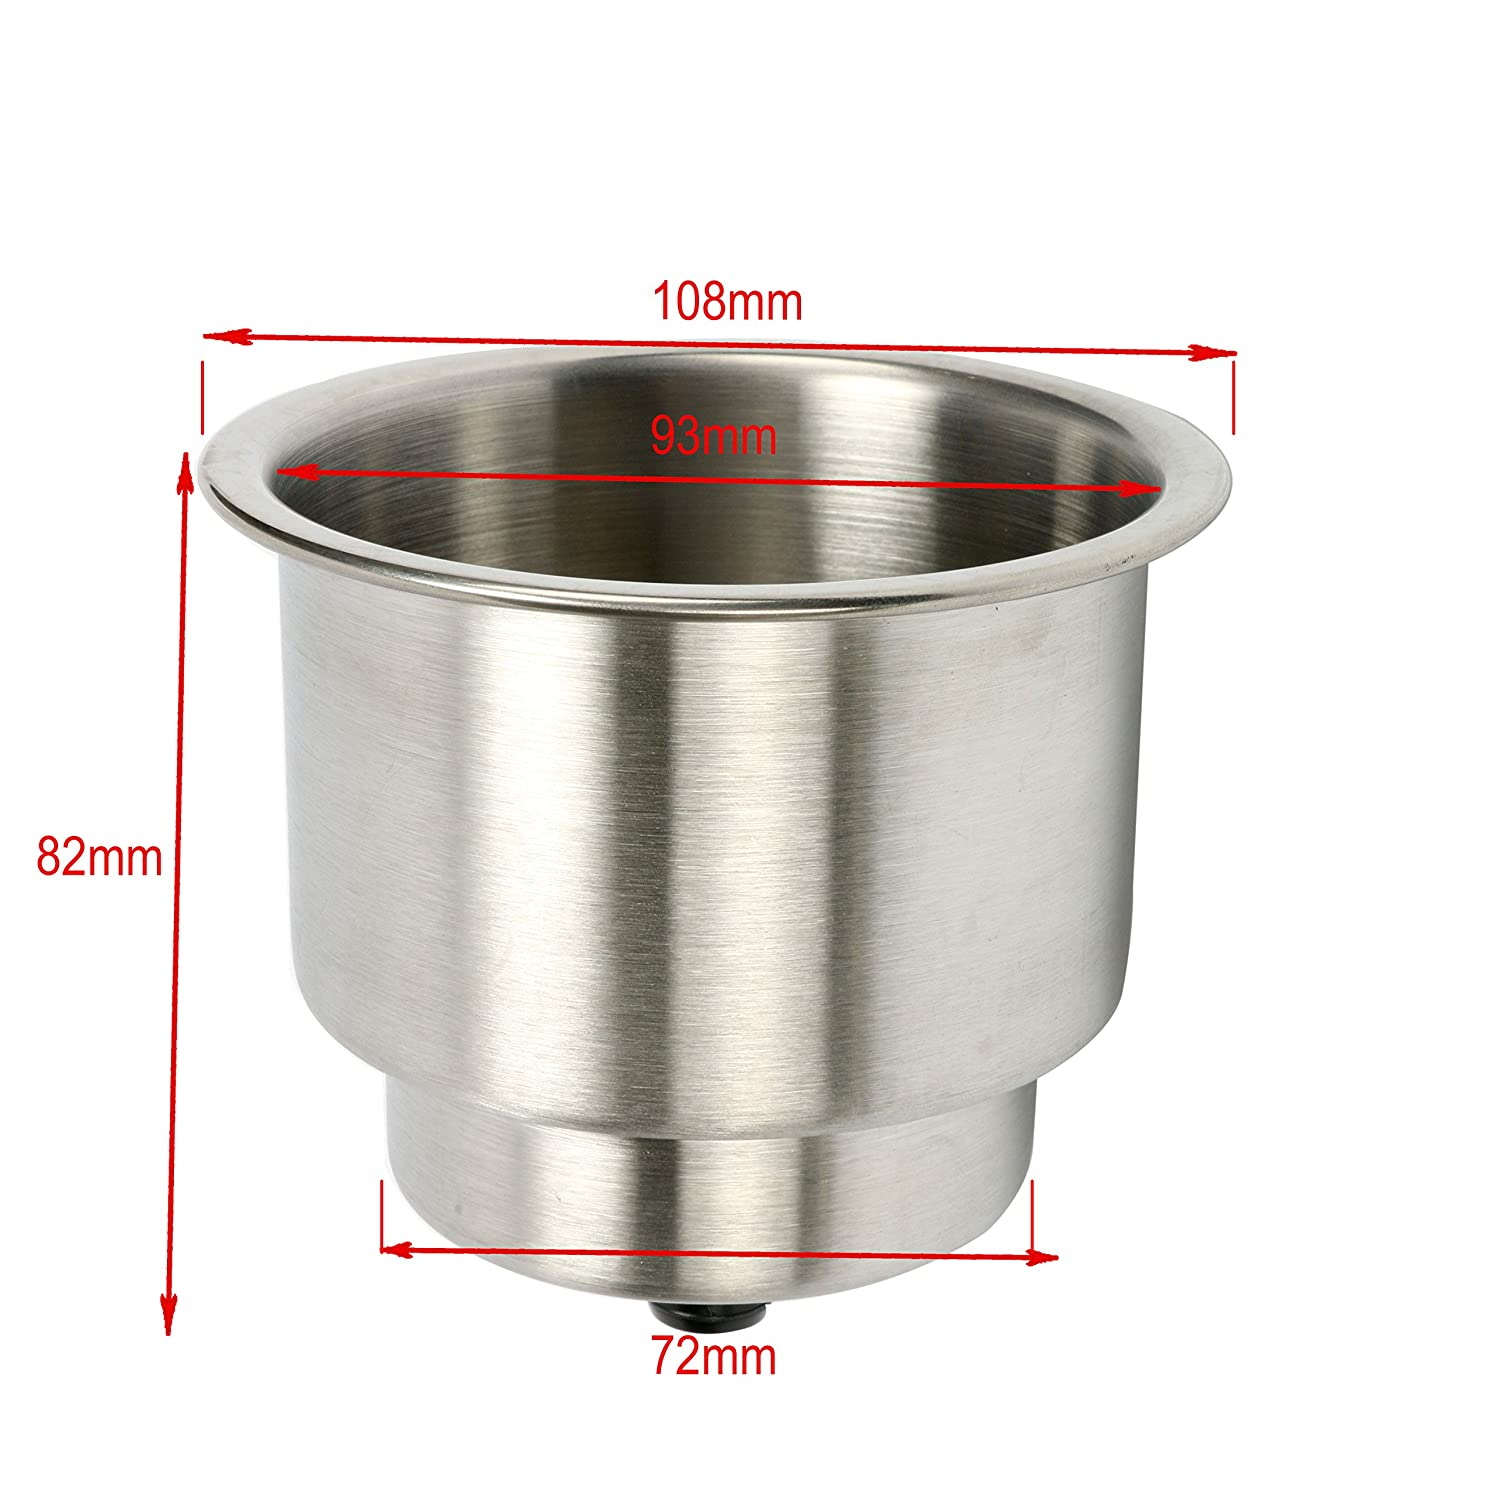 SeaLux 4pcs Stainless Steel Cup Drink Holder with Drain for Marine Boat RV Camper